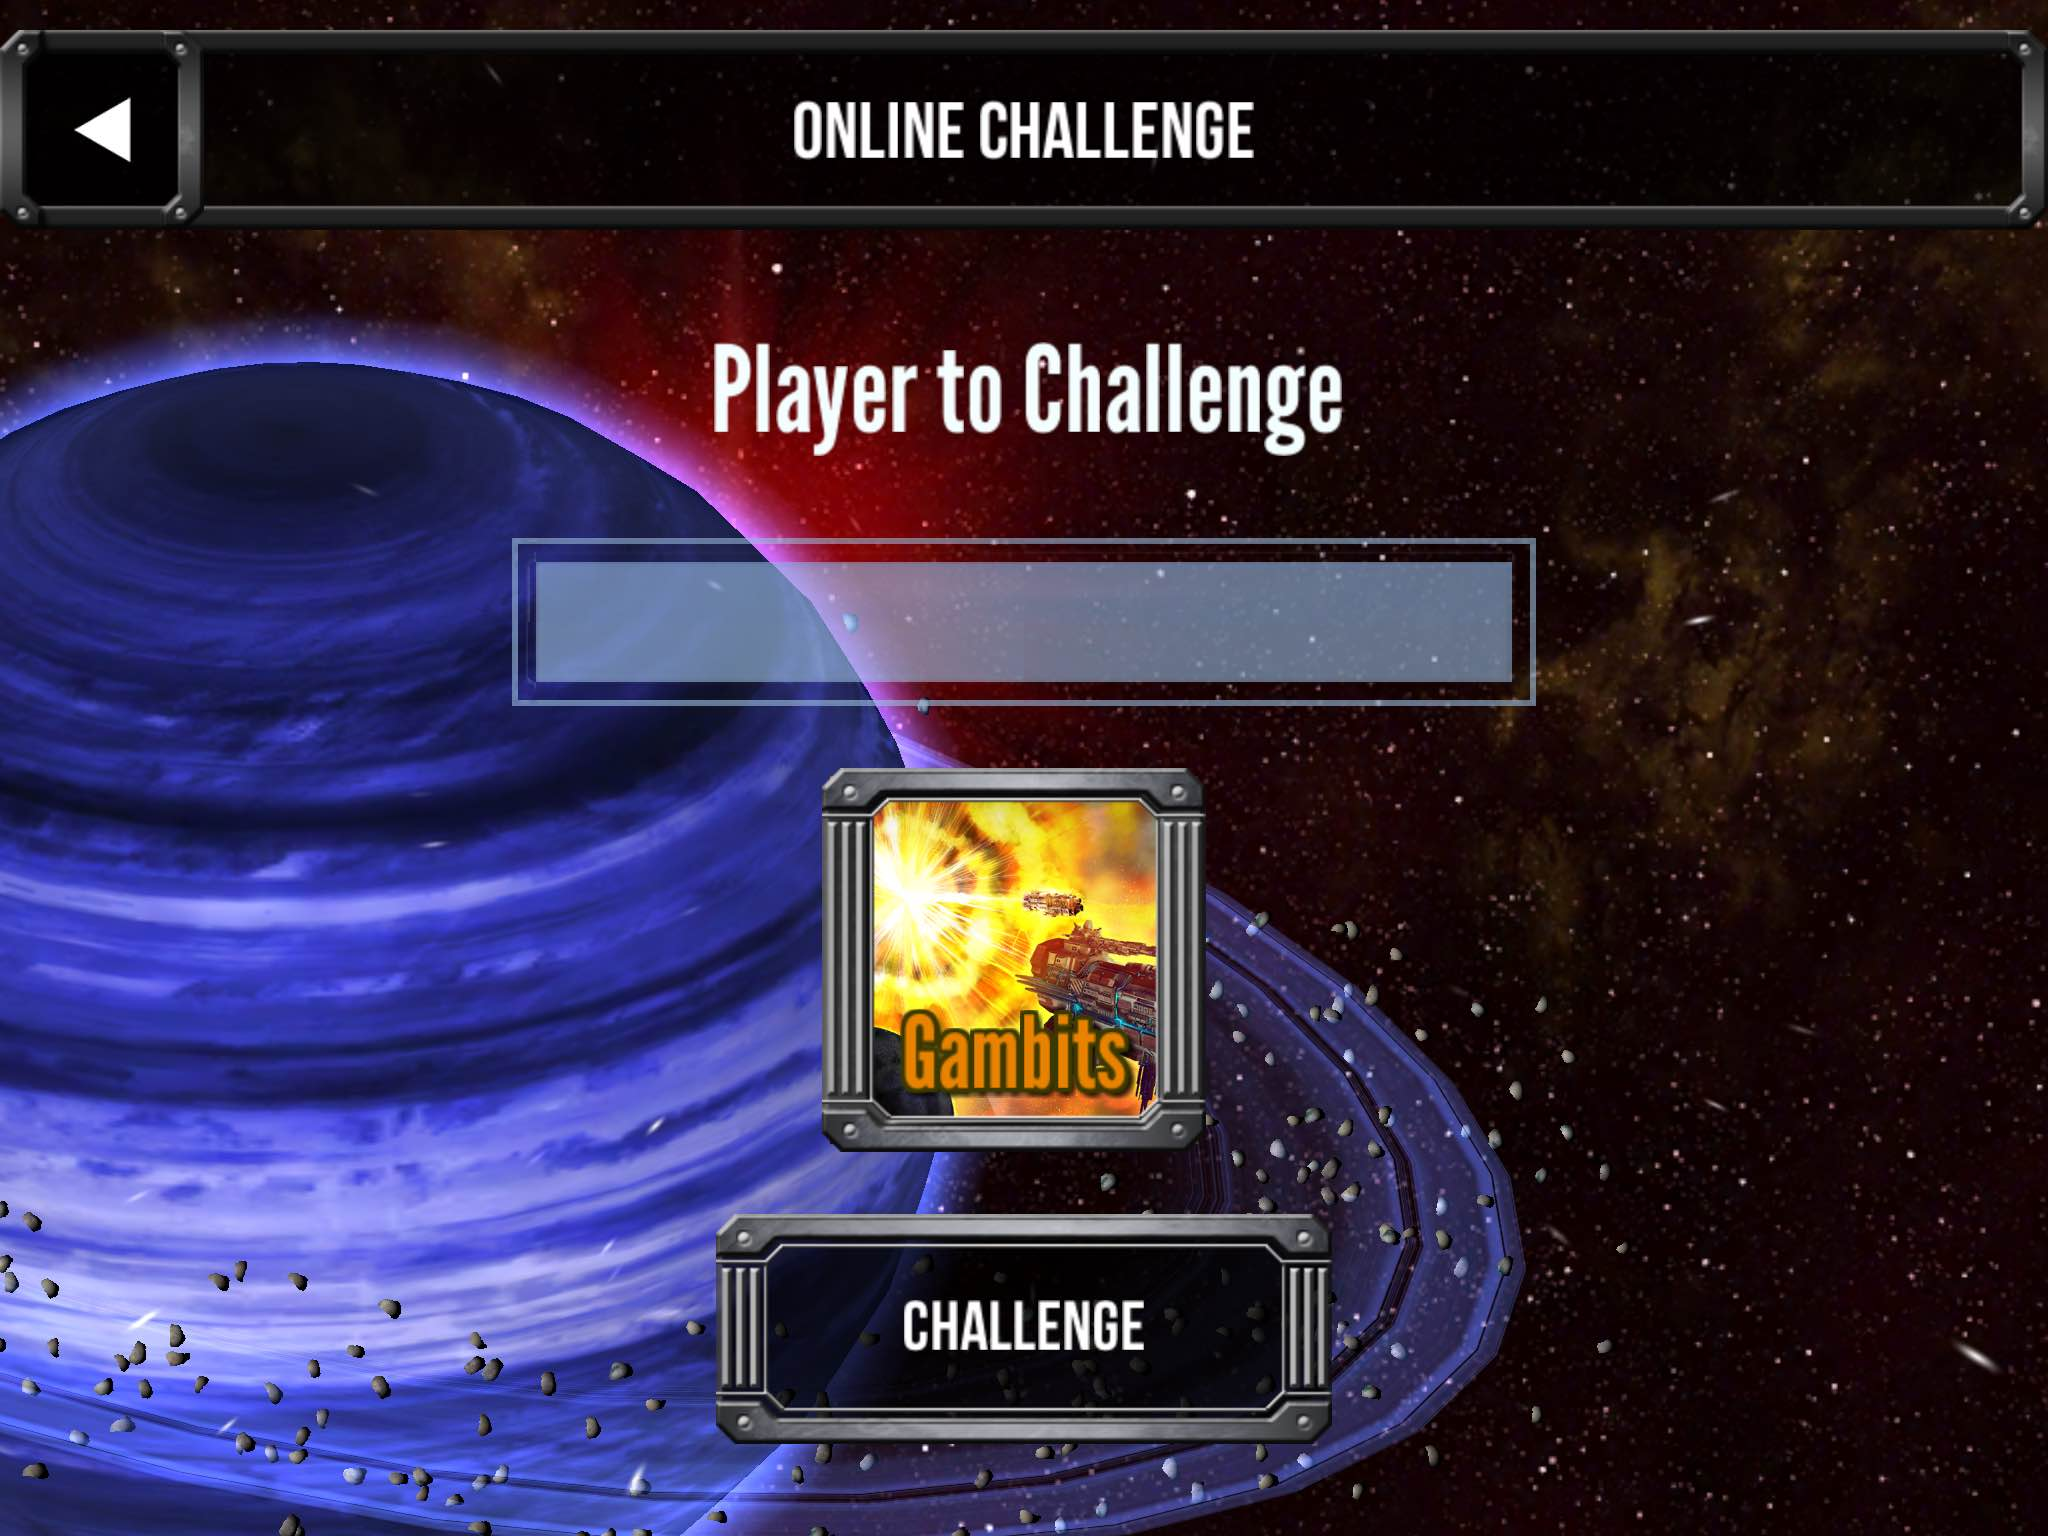 Star Realms Gambit Player Challenge